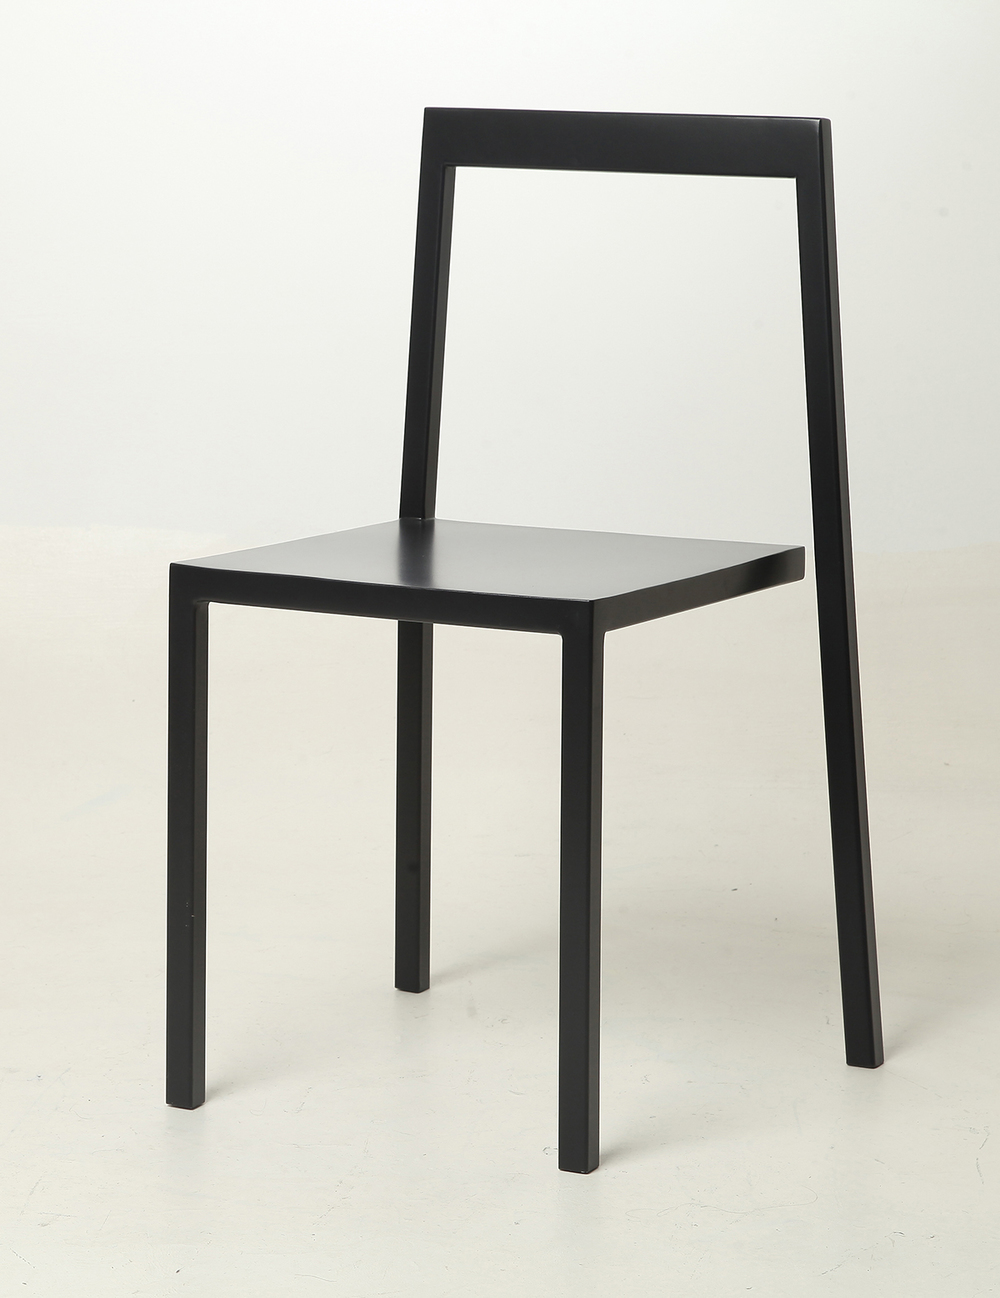 Chair 3/4. image courtesy from Sandro Lominashvil